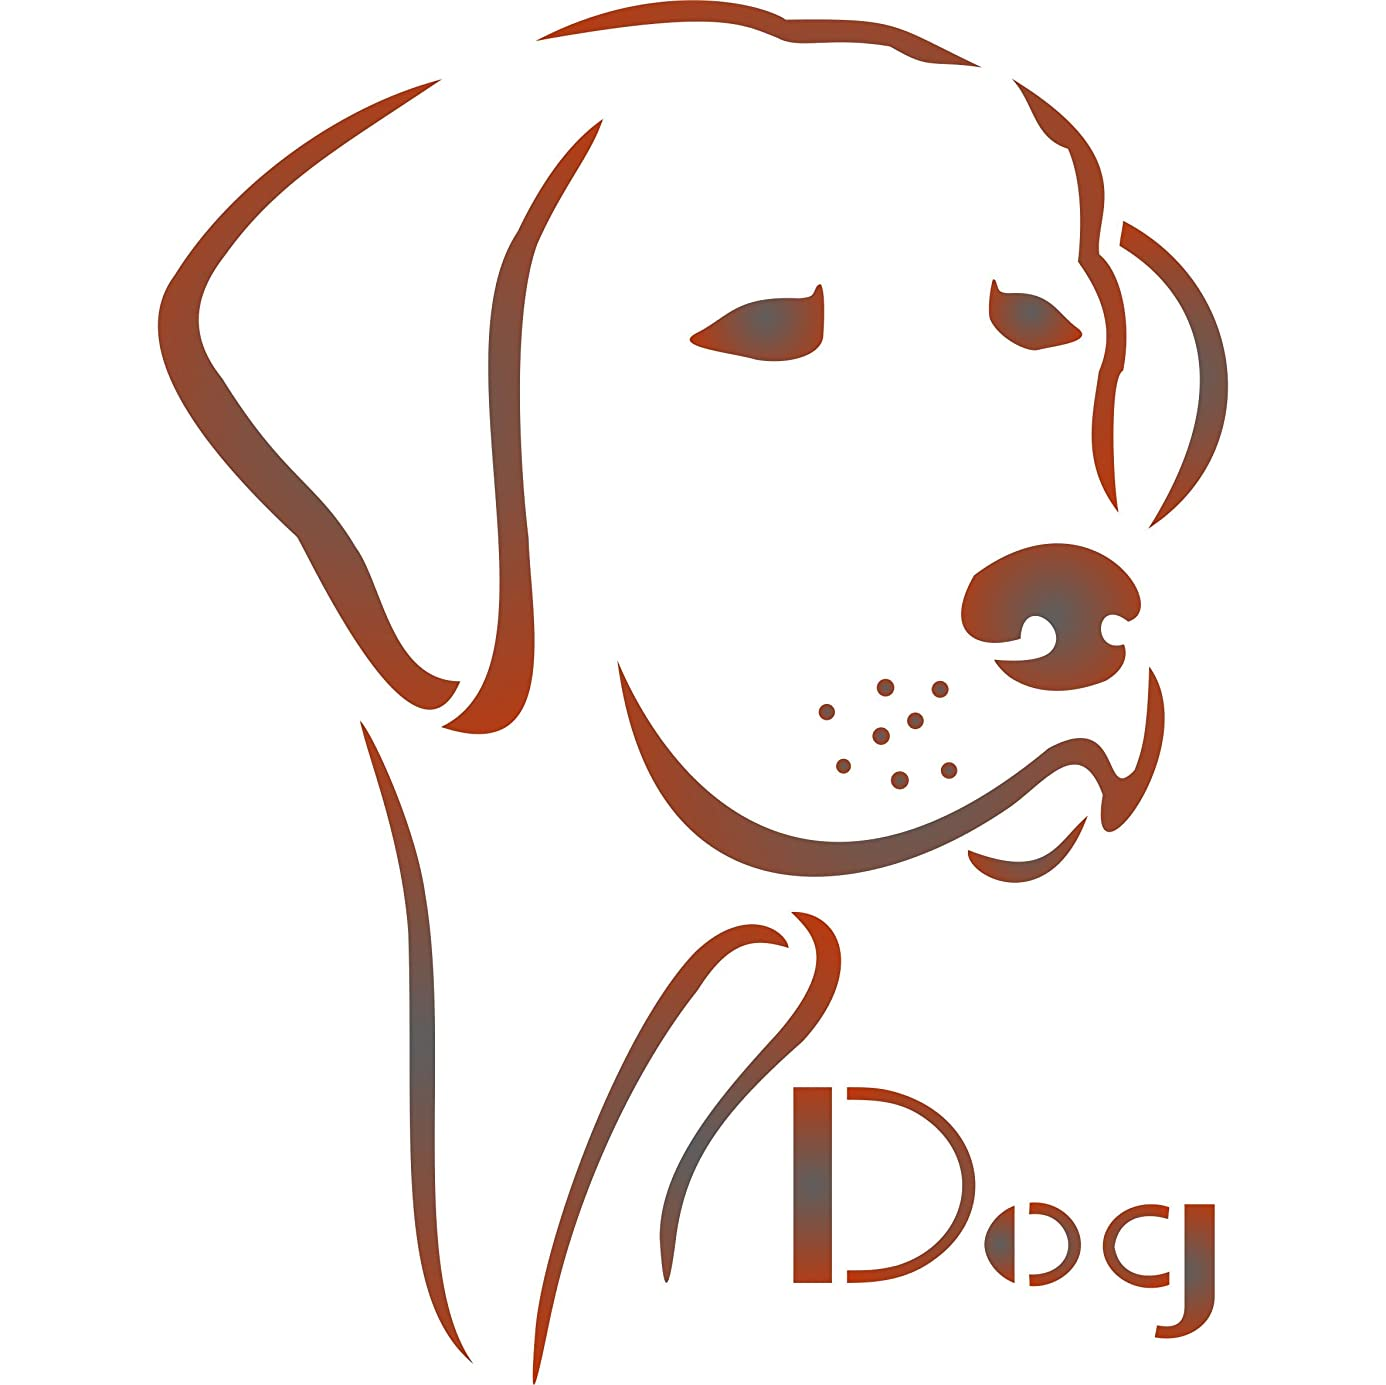 "Dog Stencil - (size 8.5""w x 11""h) Reusable Dog Stencils for Painting - Best Quality Dog Stencils for Walls - Use on Walls, Floors, Fabrics, Glass, Wood, Terracotta, and More… nel2965254"